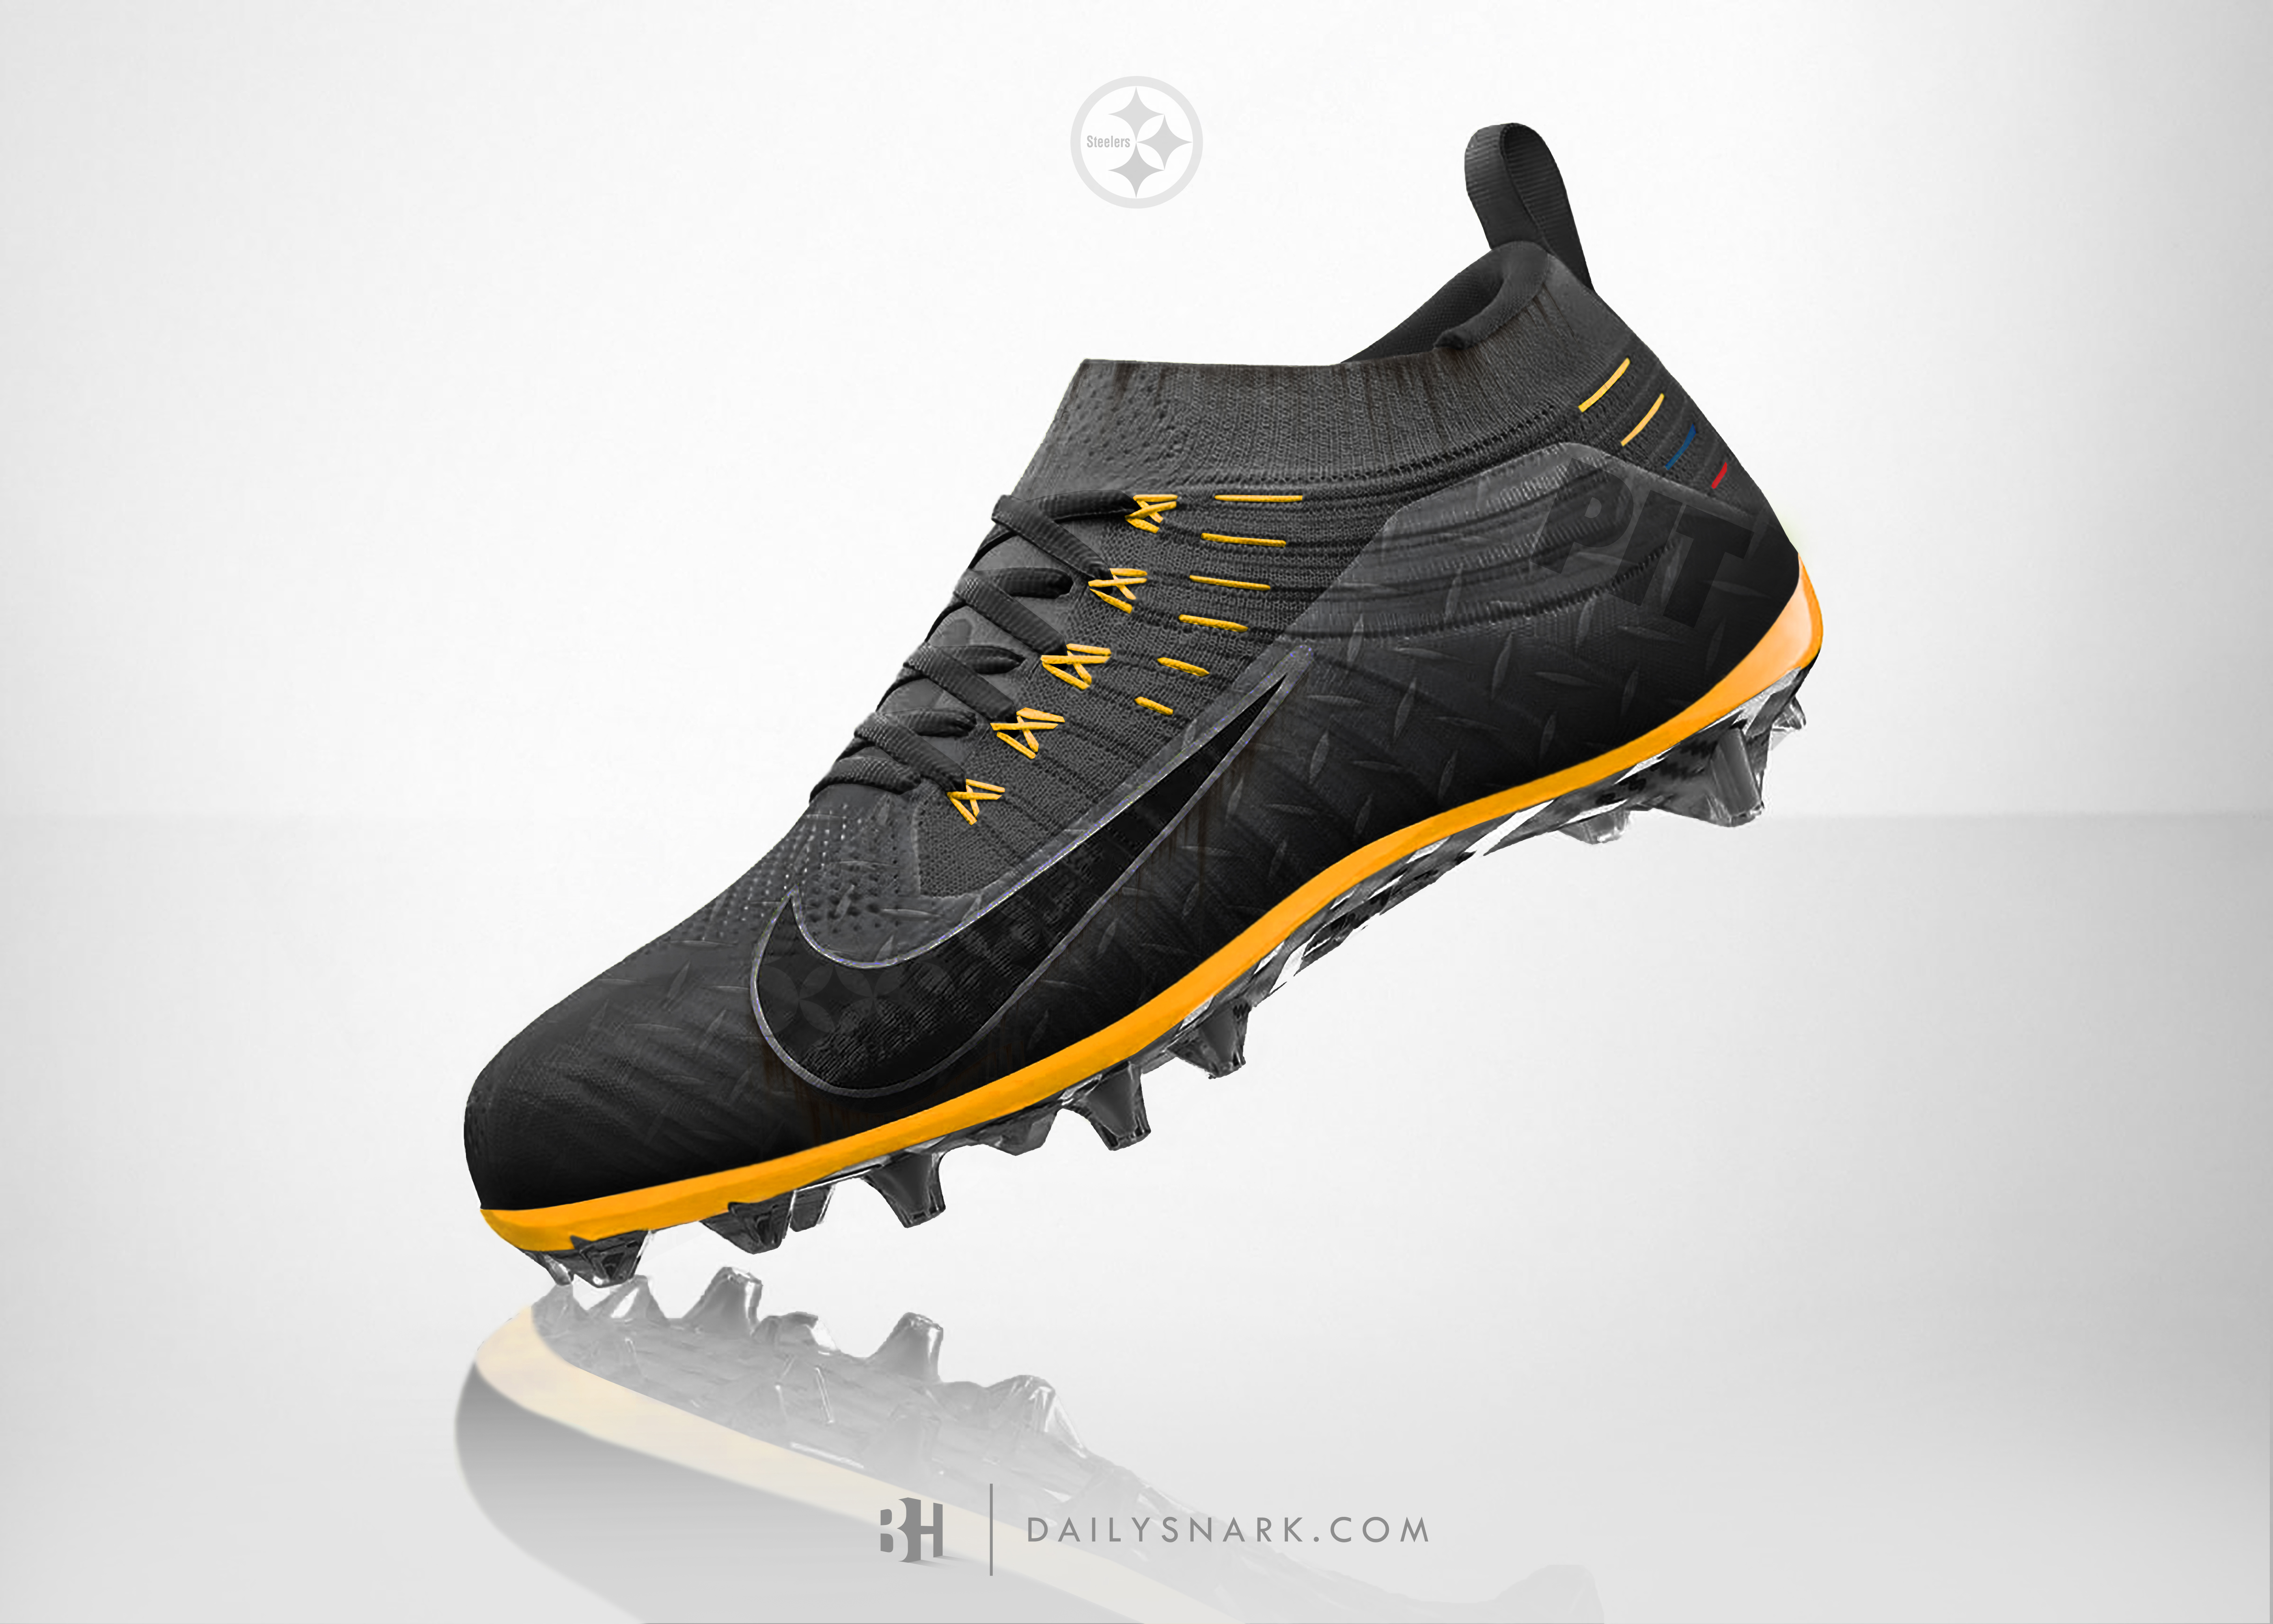 d85158d048 Designer Creates Awesome Custom Cleat Designs For All 32 NFL Teams ...